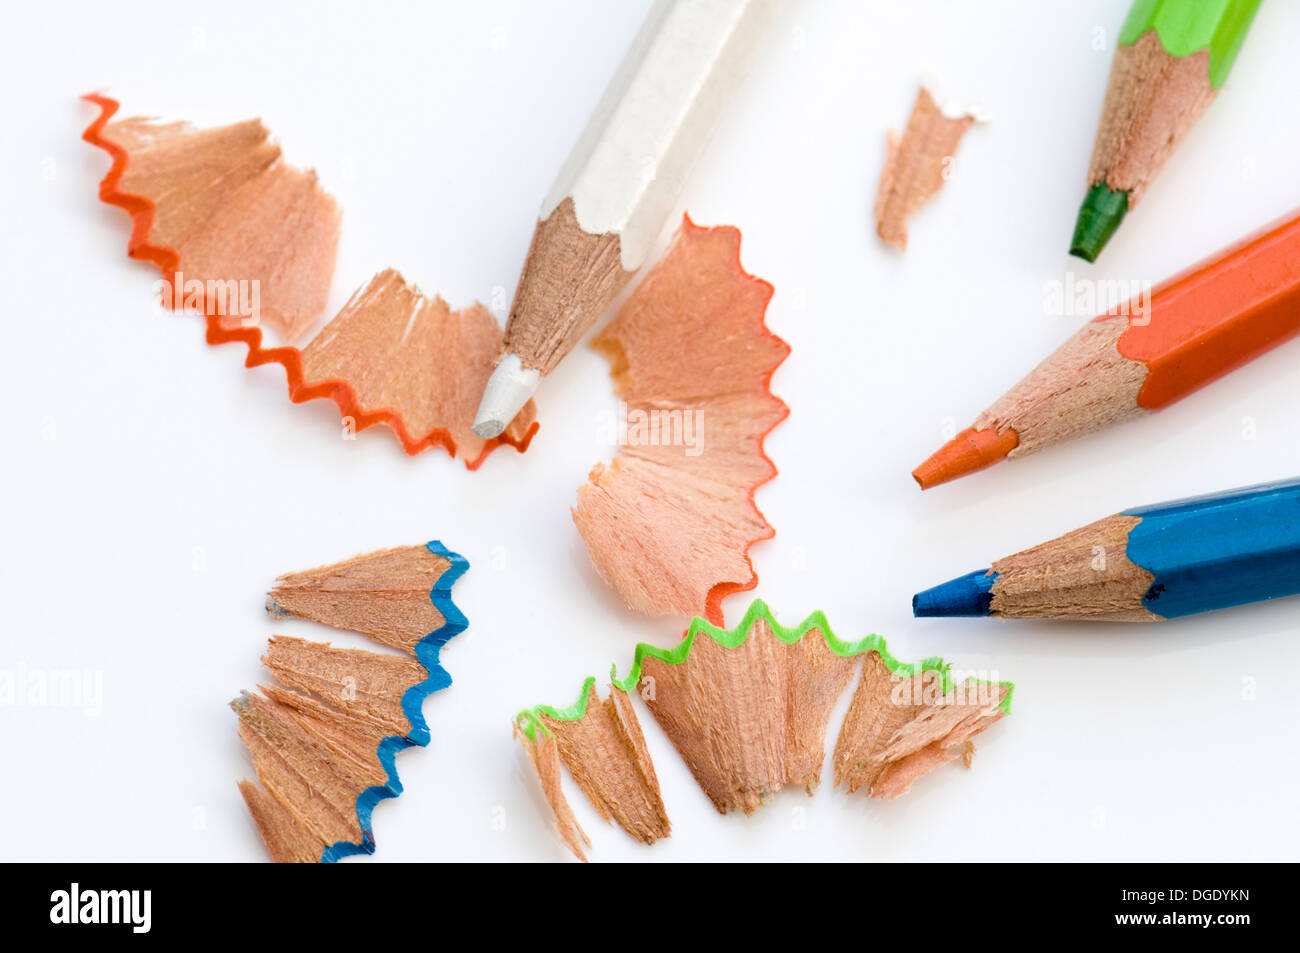 Colouring pencils with pencil shavings on old white background - Stock Image